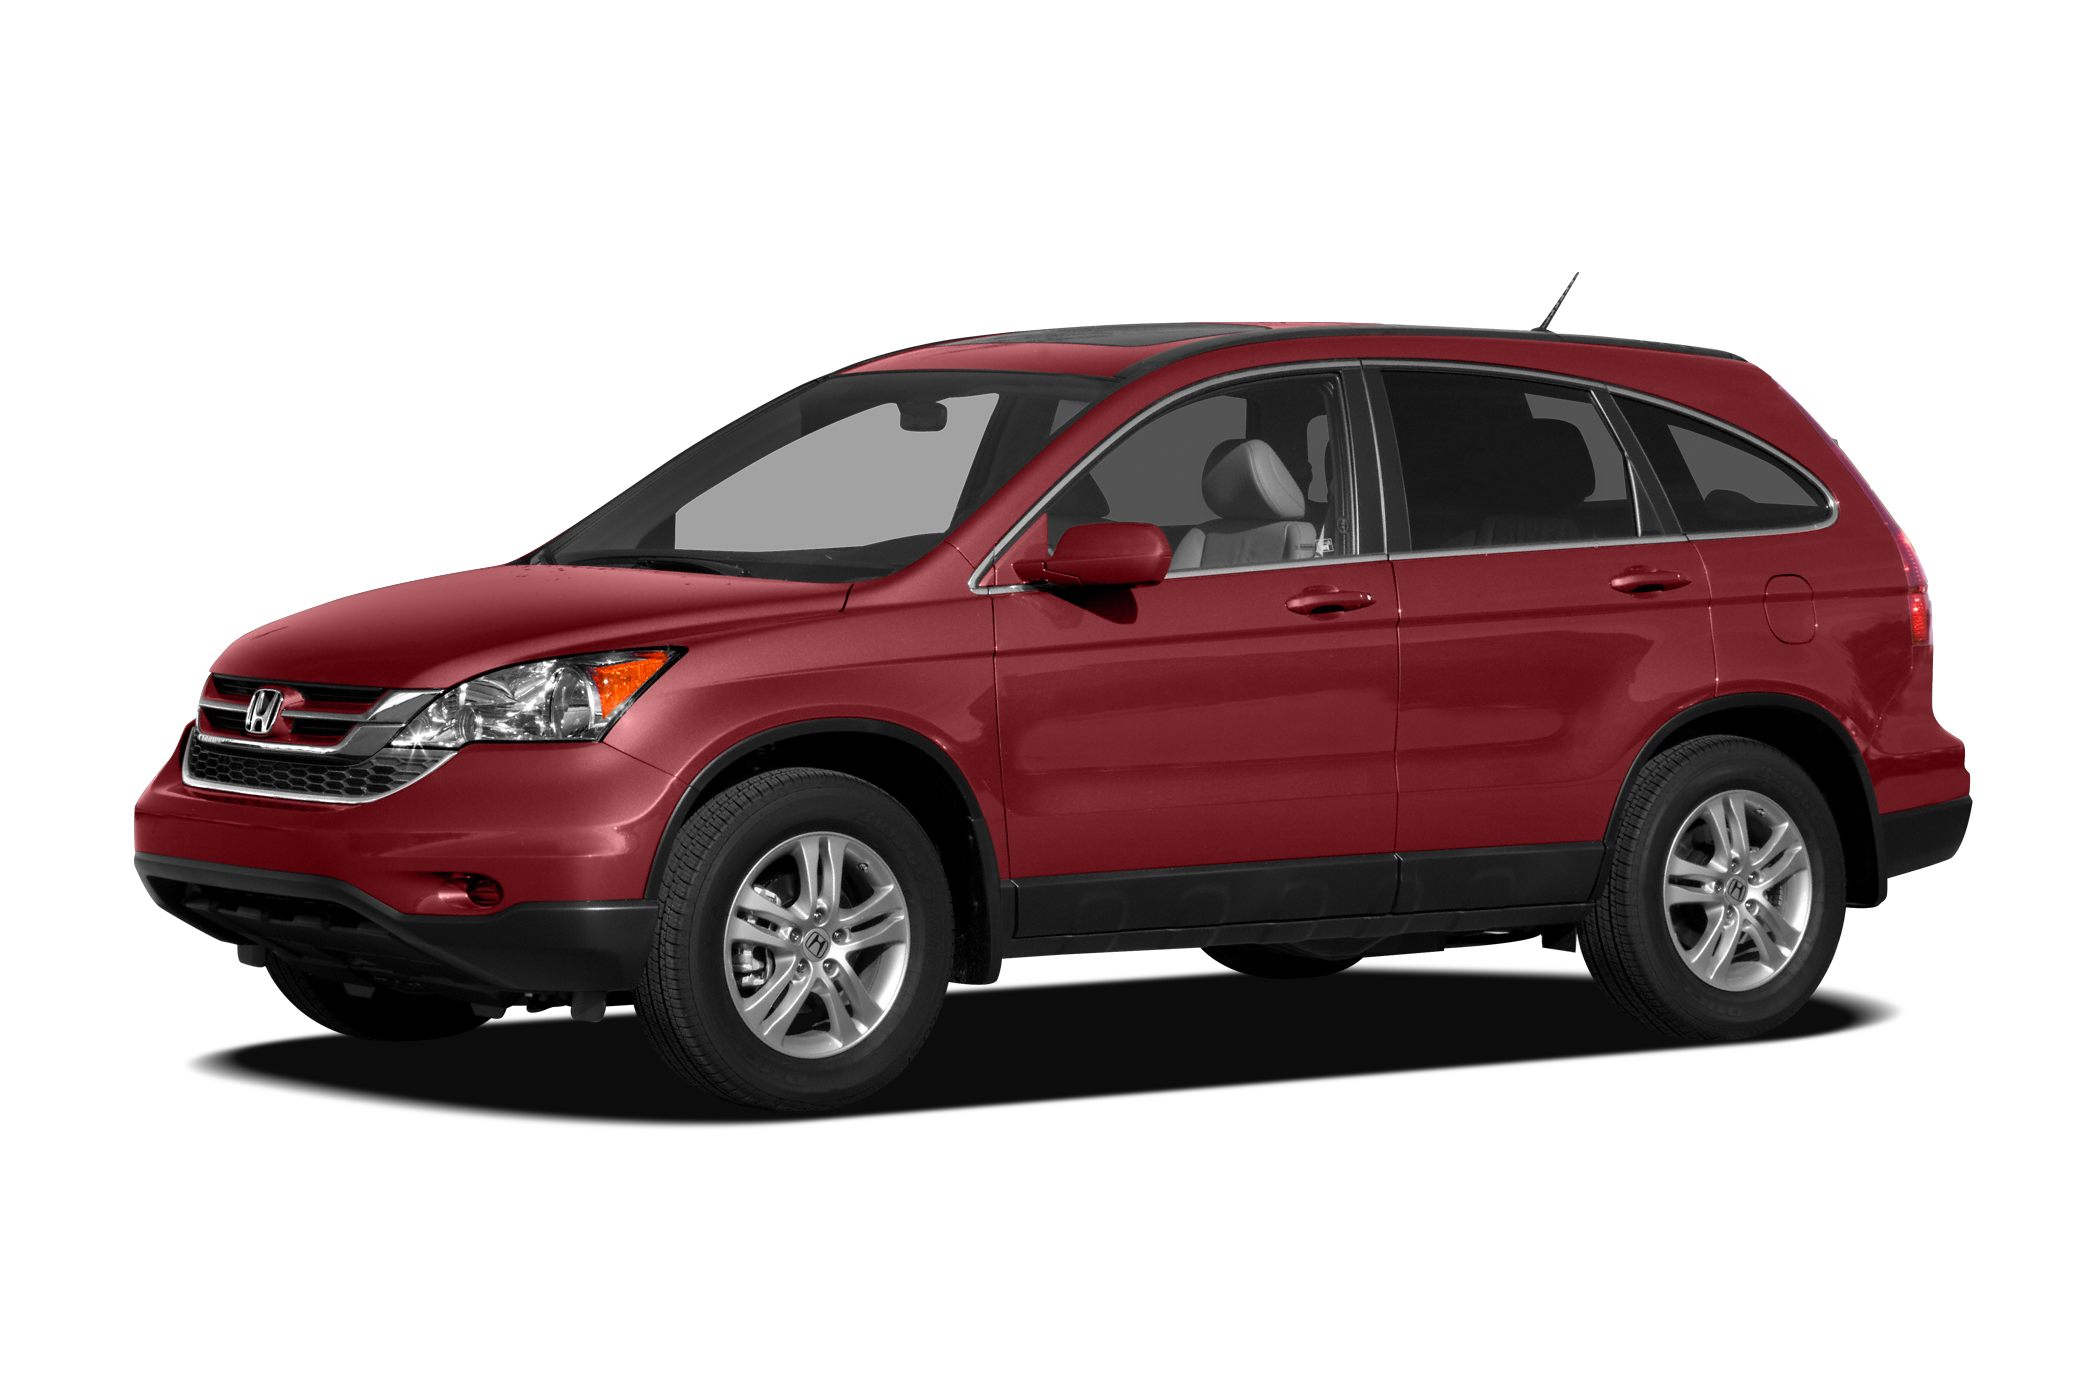 2010 Honda CR-V EX SUV for sale in Charlotte for $18,795 with 54,981 miles.